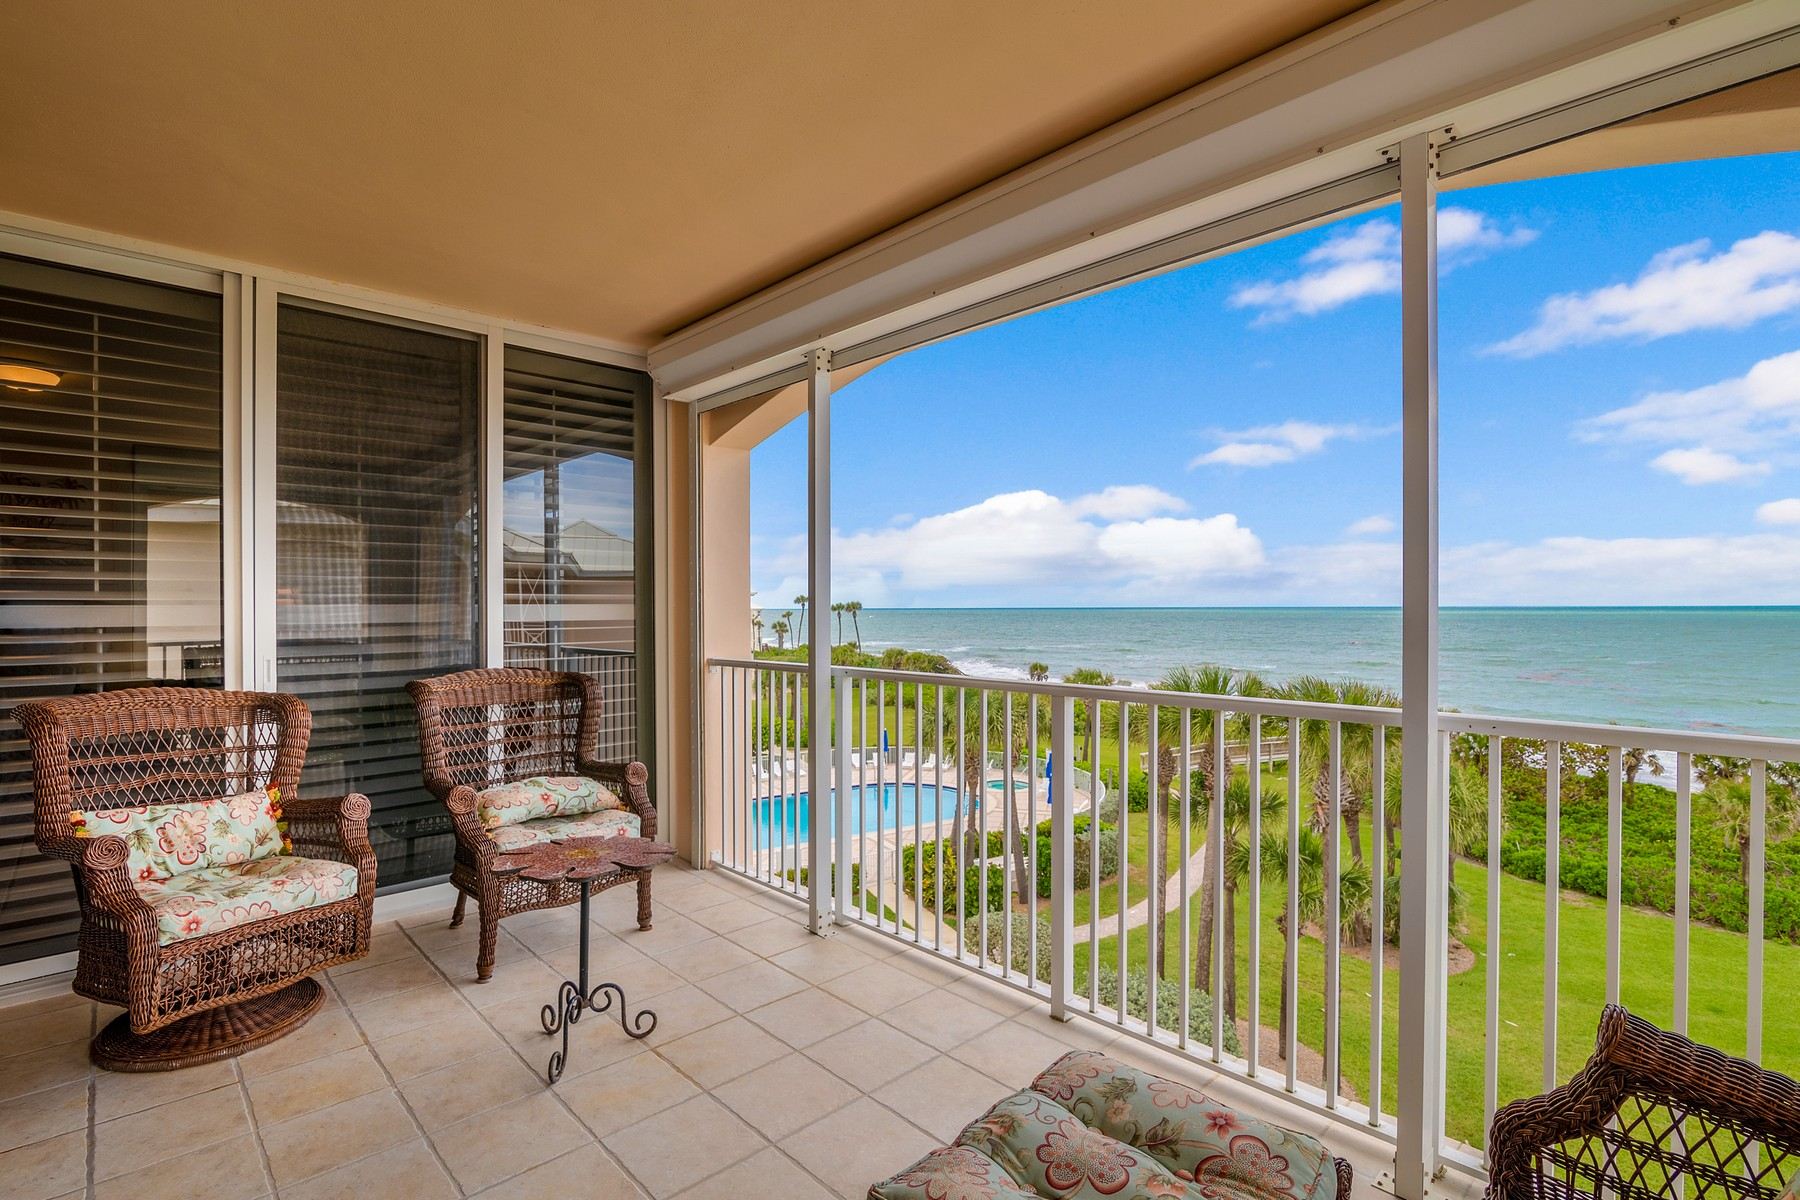 Condominiums for Sale at Top Floor Oceanfront Condo 8866 N Sea Oaks Way #212 Vero Beach, Florida 32963 United States